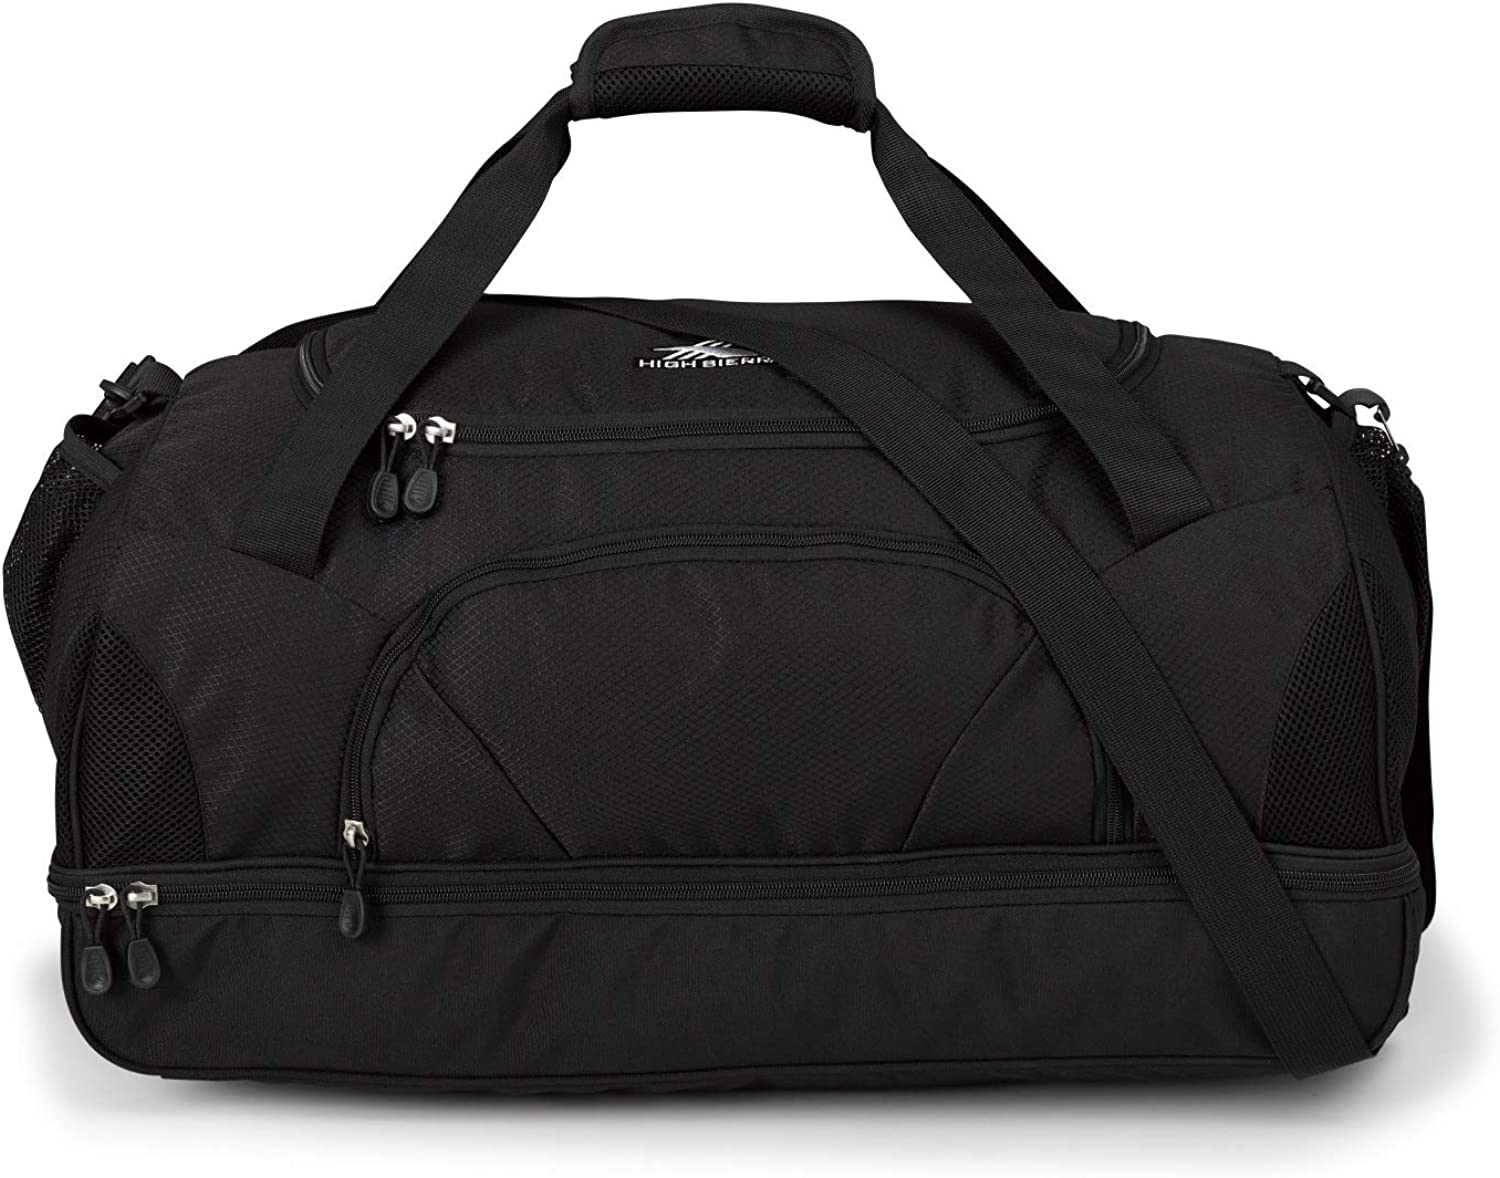 High Sierra Crossport 2-Wallop Duffel Bag